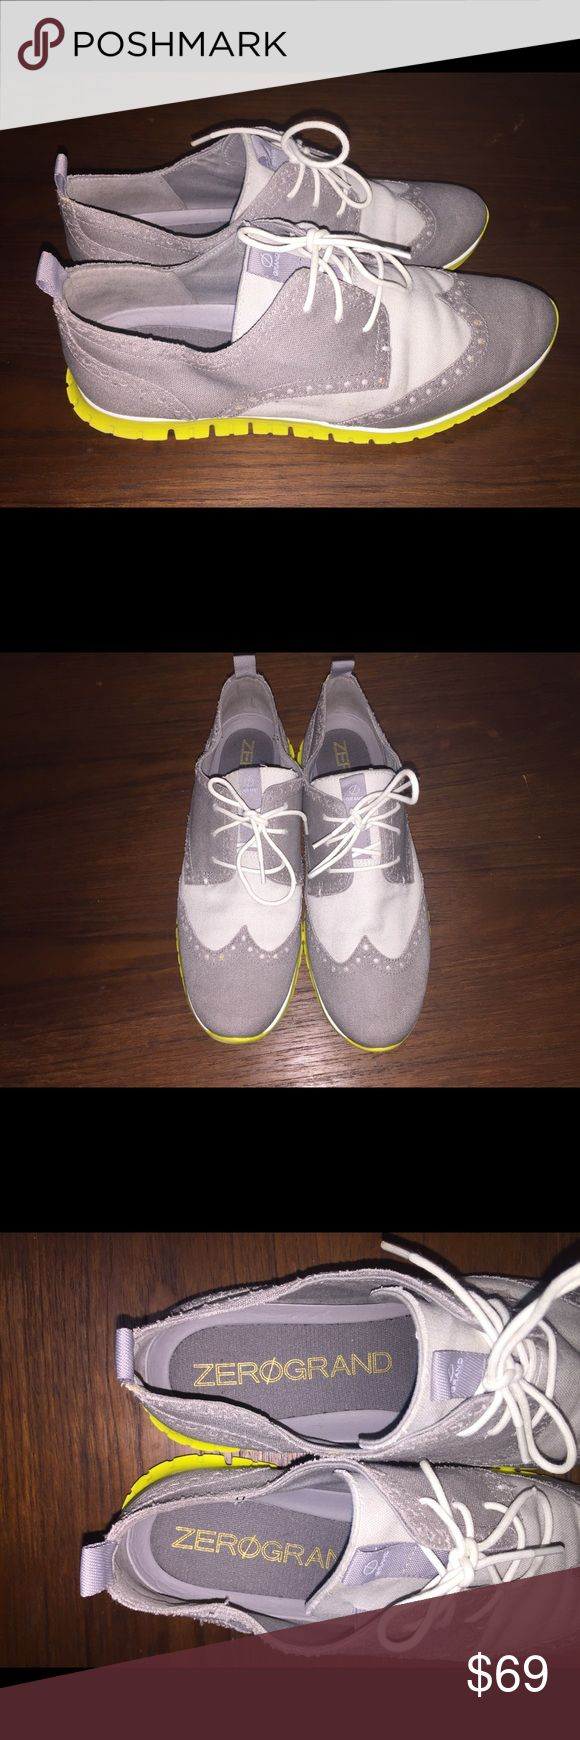 Cole Haan Zero Grand Oxford Shoes Unique and oh so comfortable! Worn once. In fantastic condition. I haven't seen anyone else with shoes like this! MAKE ME AN OFFER! Cole Haan Shoes Flats & Loafers